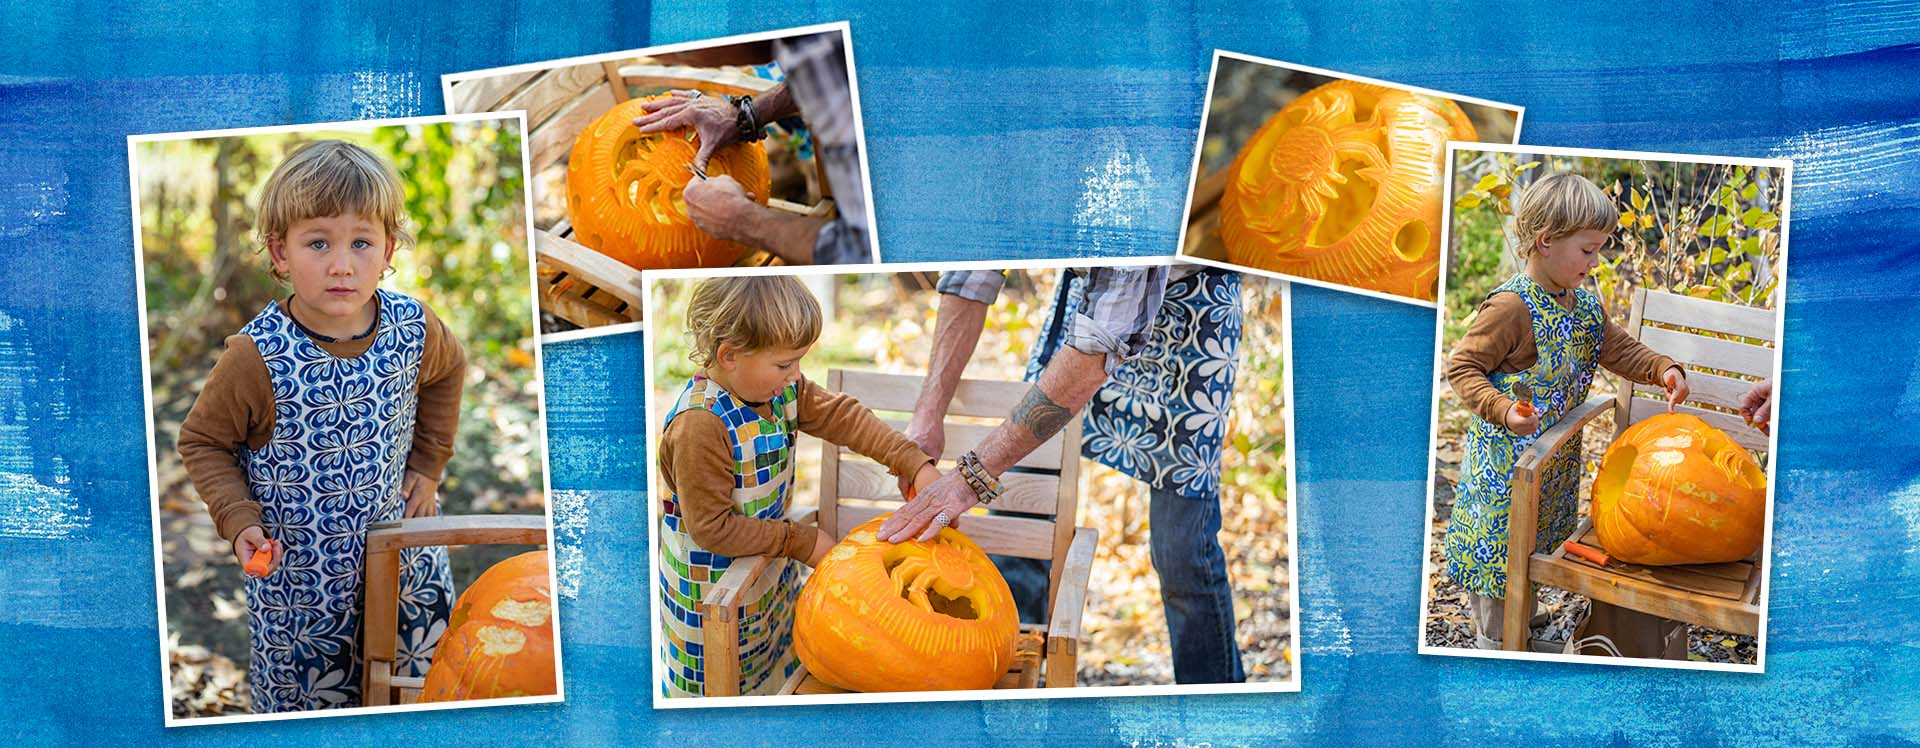 man and a young boy carving a pumpkin together wearing colorful aprons